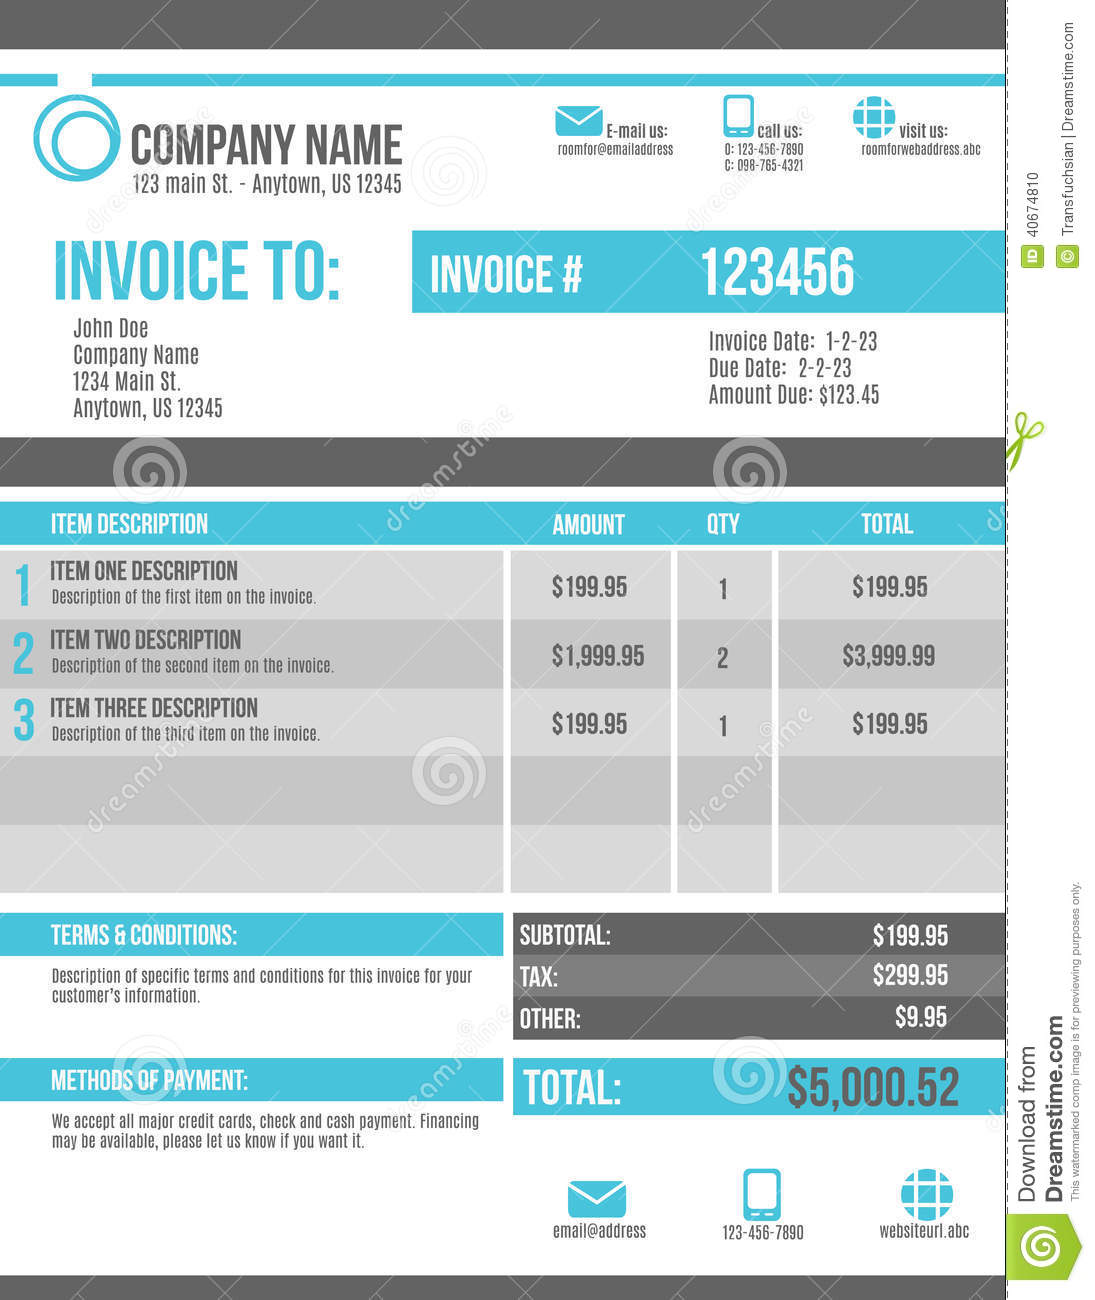 Invoice Tracking Excel Template Invoice Tracker Template Customizable Invoice Template Design Stock Vector Image